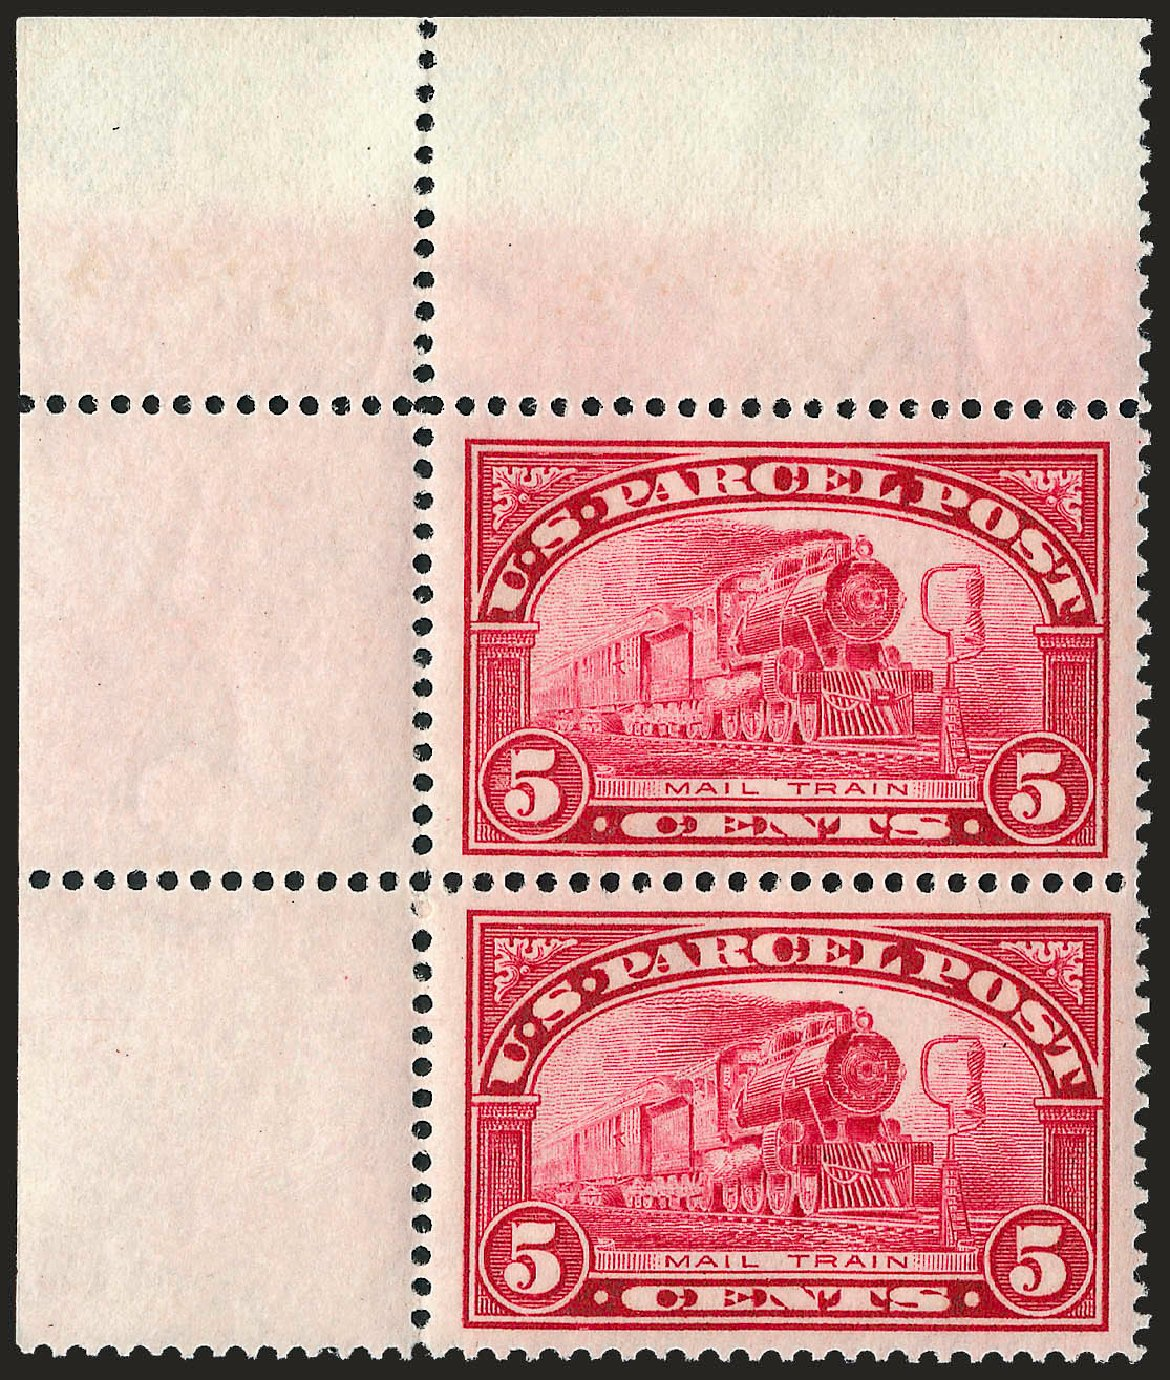 US Stamp Prices Scott Catalog Q5 - 1913 5c Parcel Post. Robert Siegel Auction Galleries, Sep 2008, Sale 962, Lot 3043